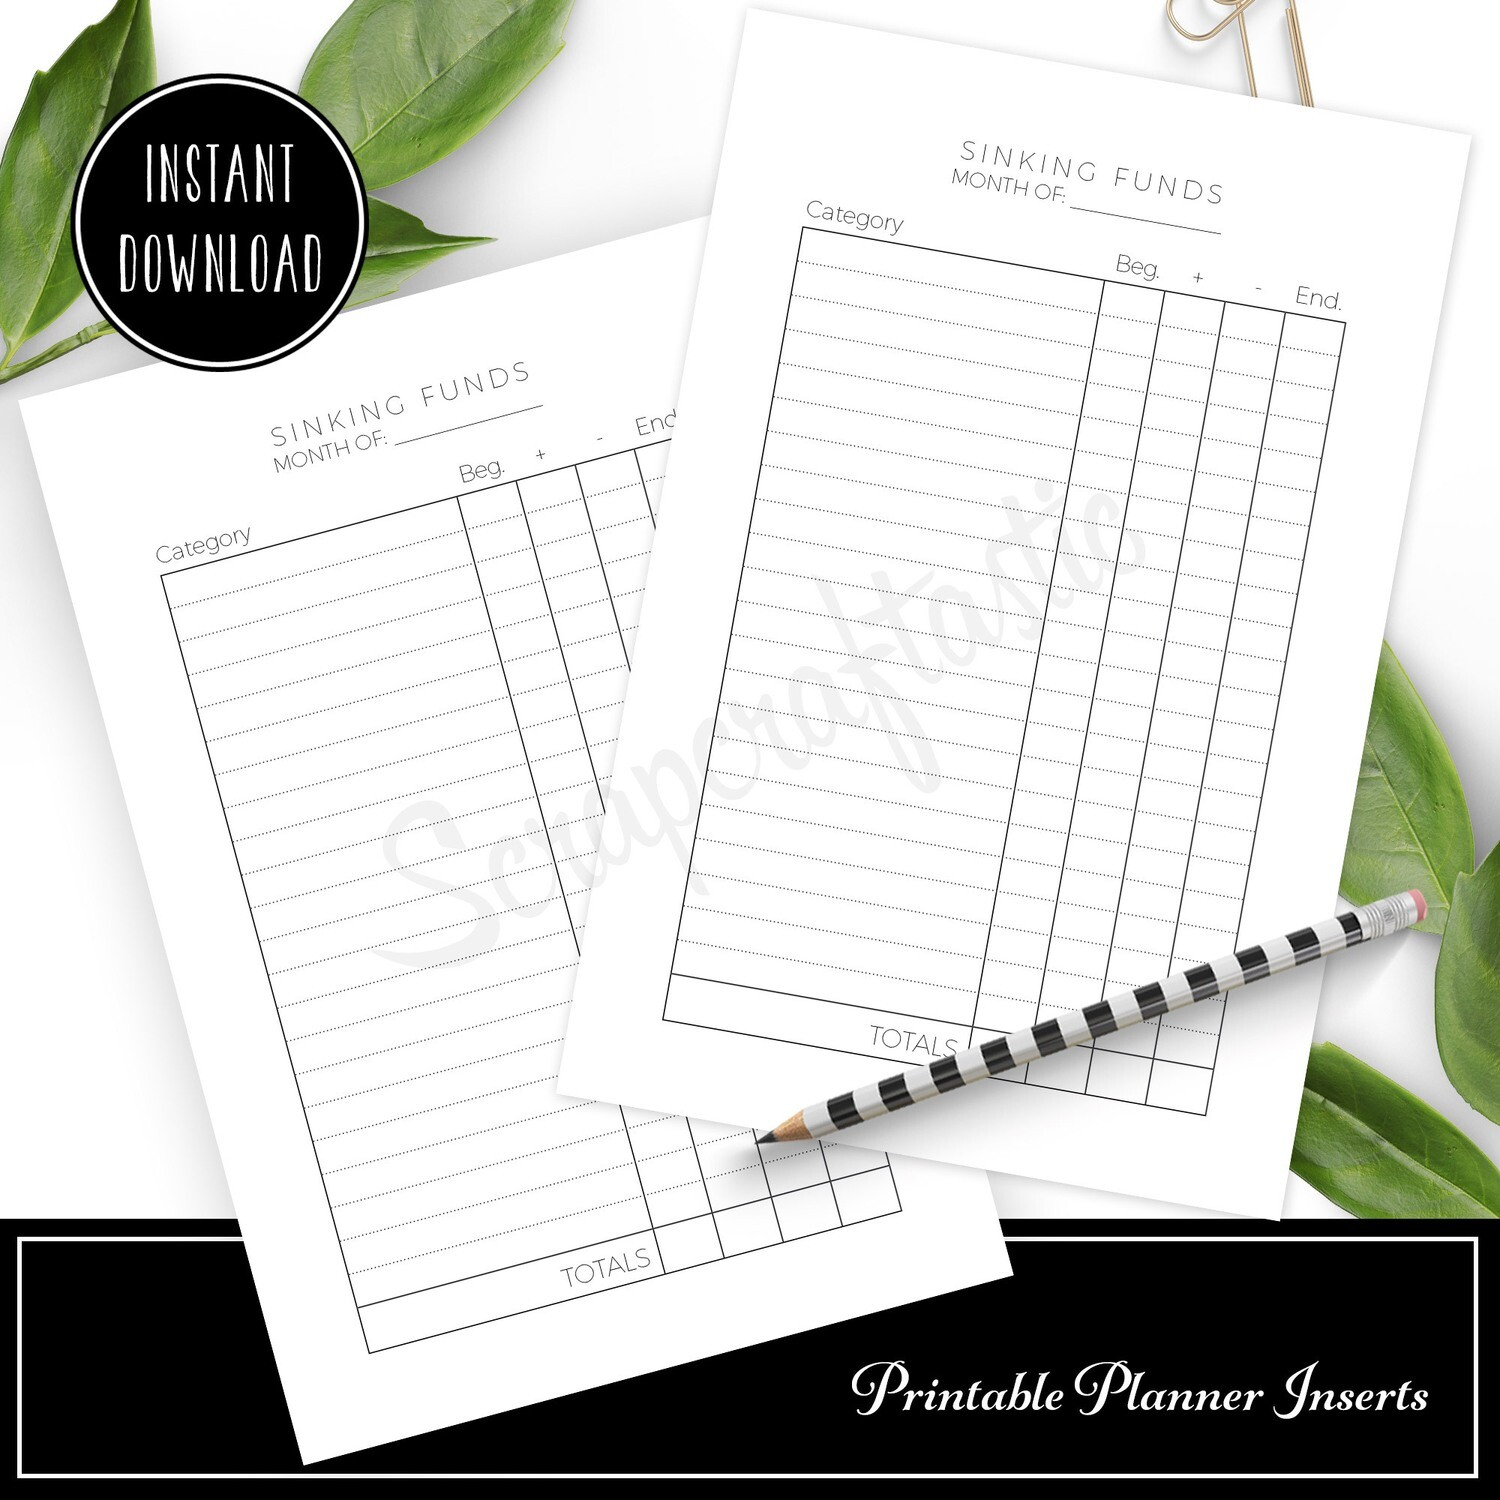 LETTER - Sinking Funds Budget Printable Planner Inserts